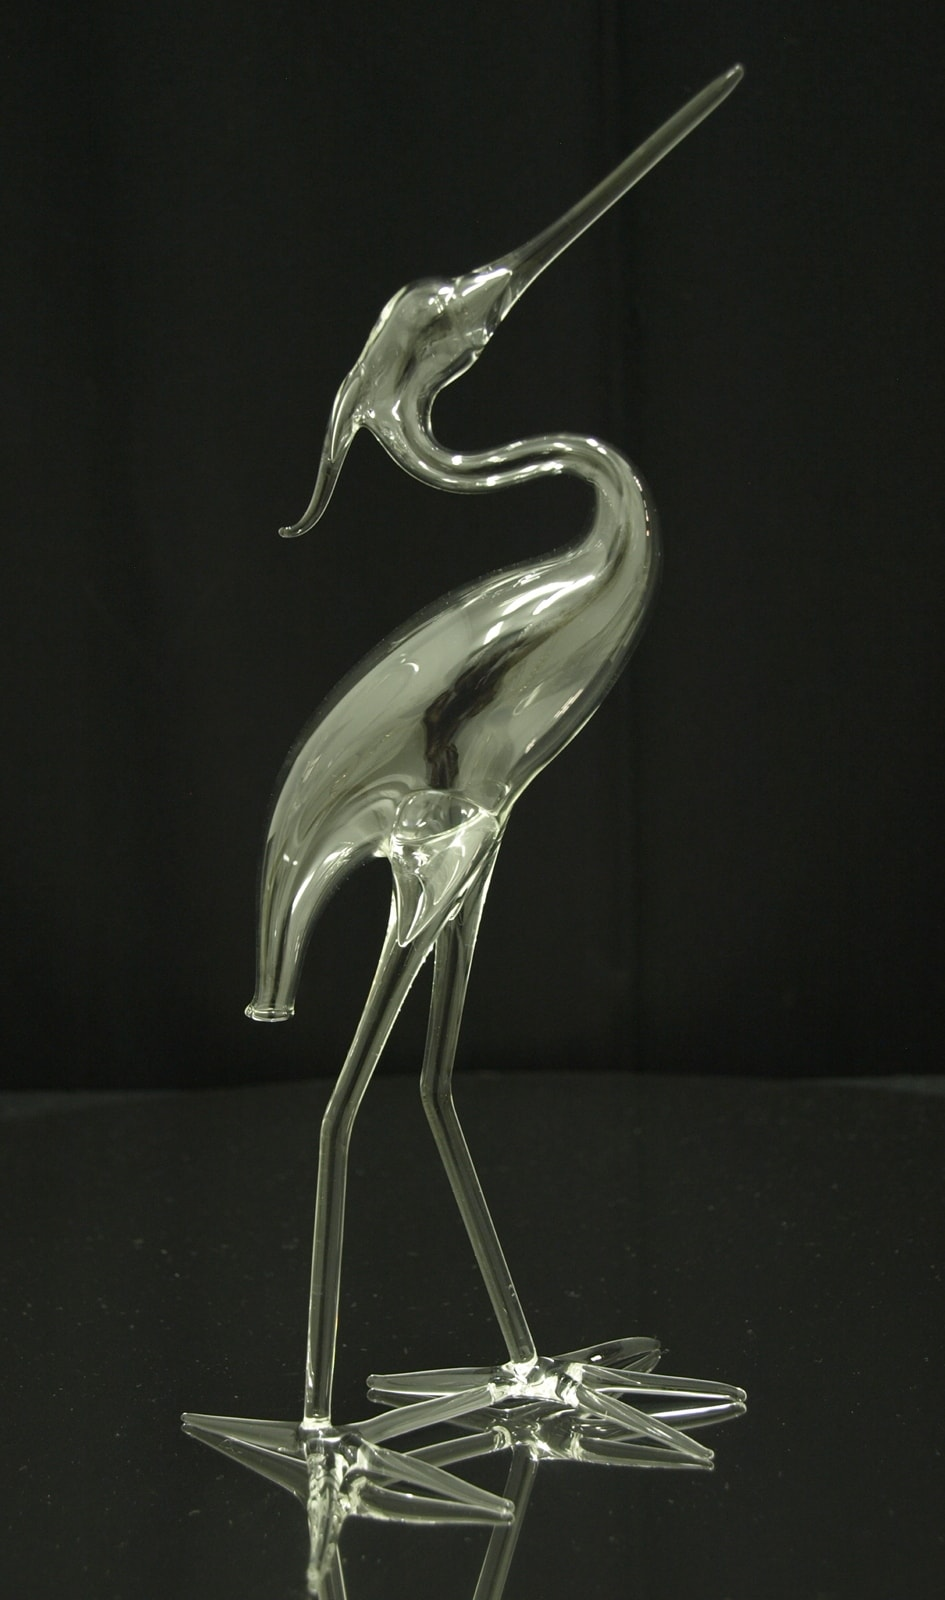 Art production, crystal glass.